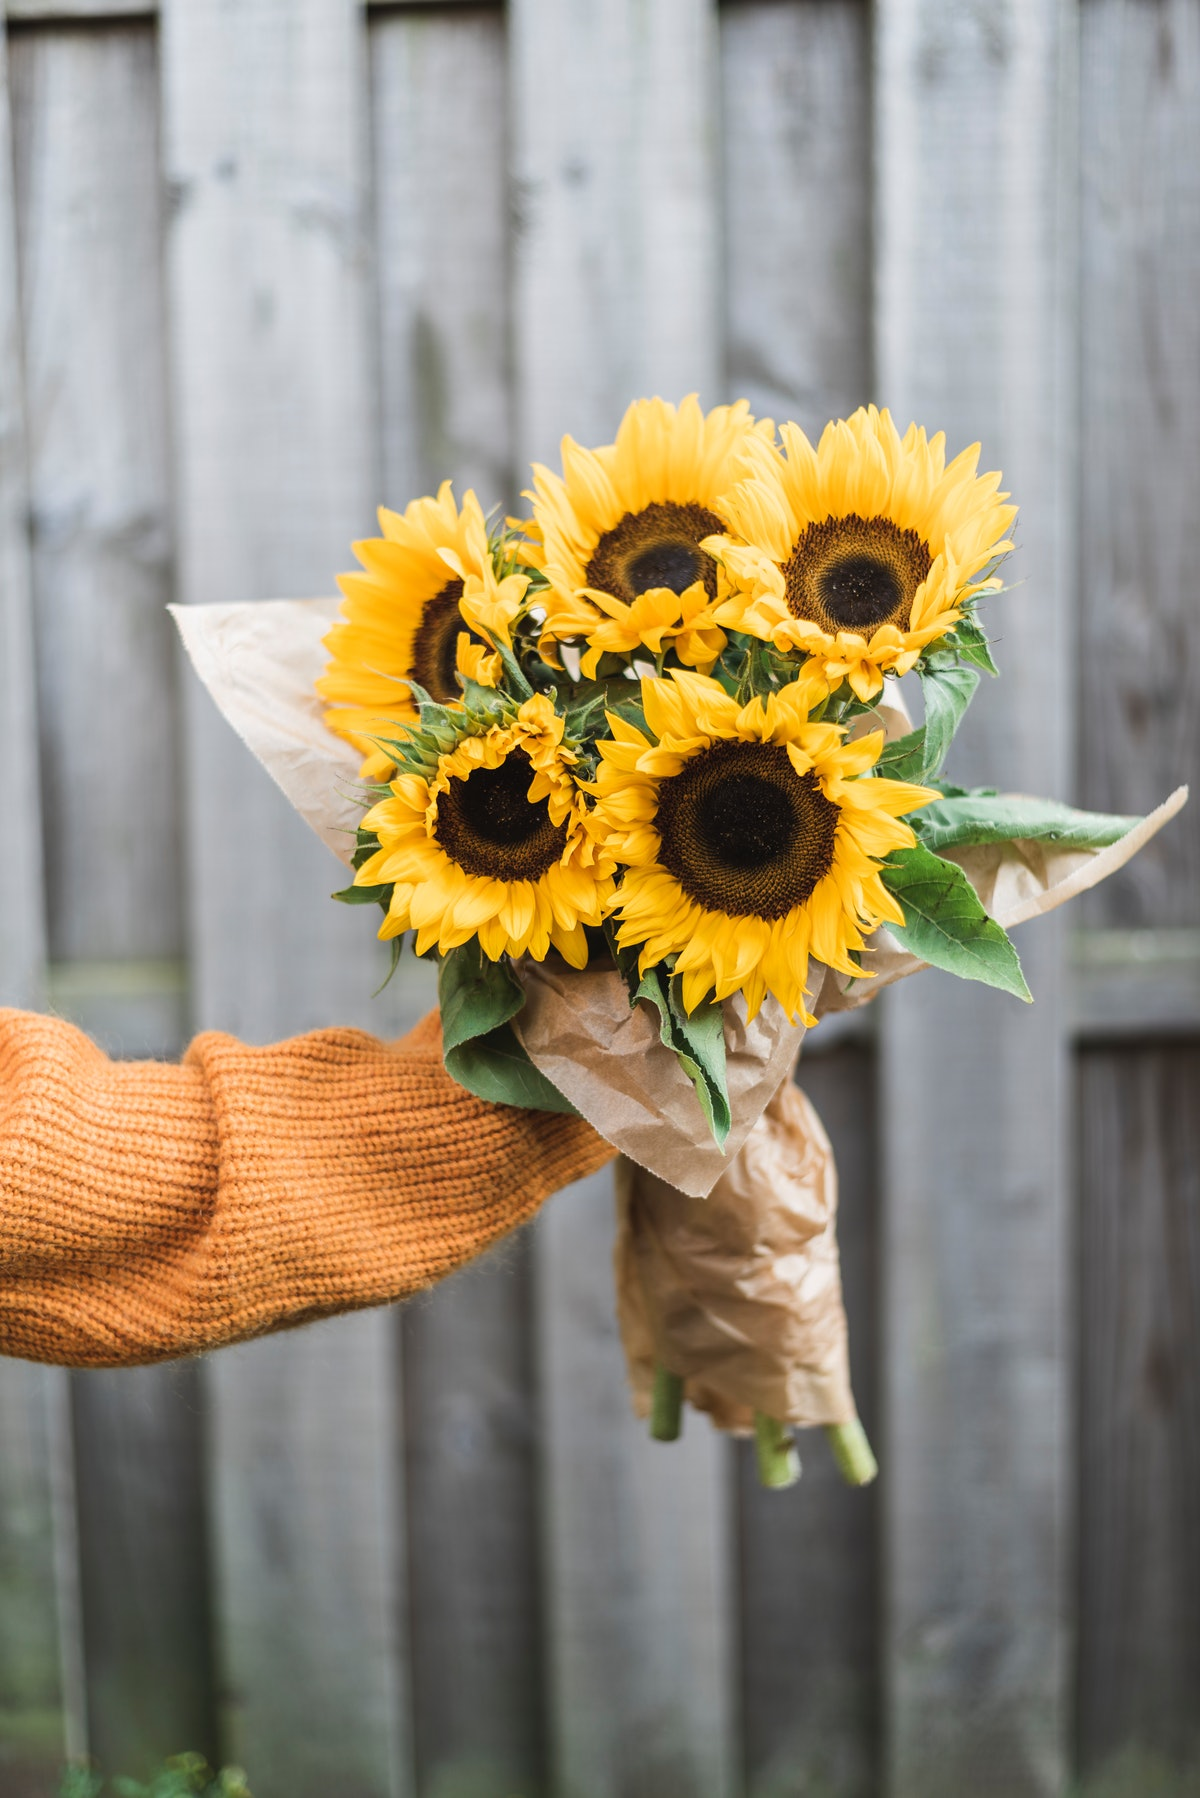 A young woman wearing an orange sweater holds up a bouquet of sunflowers in her backyard.